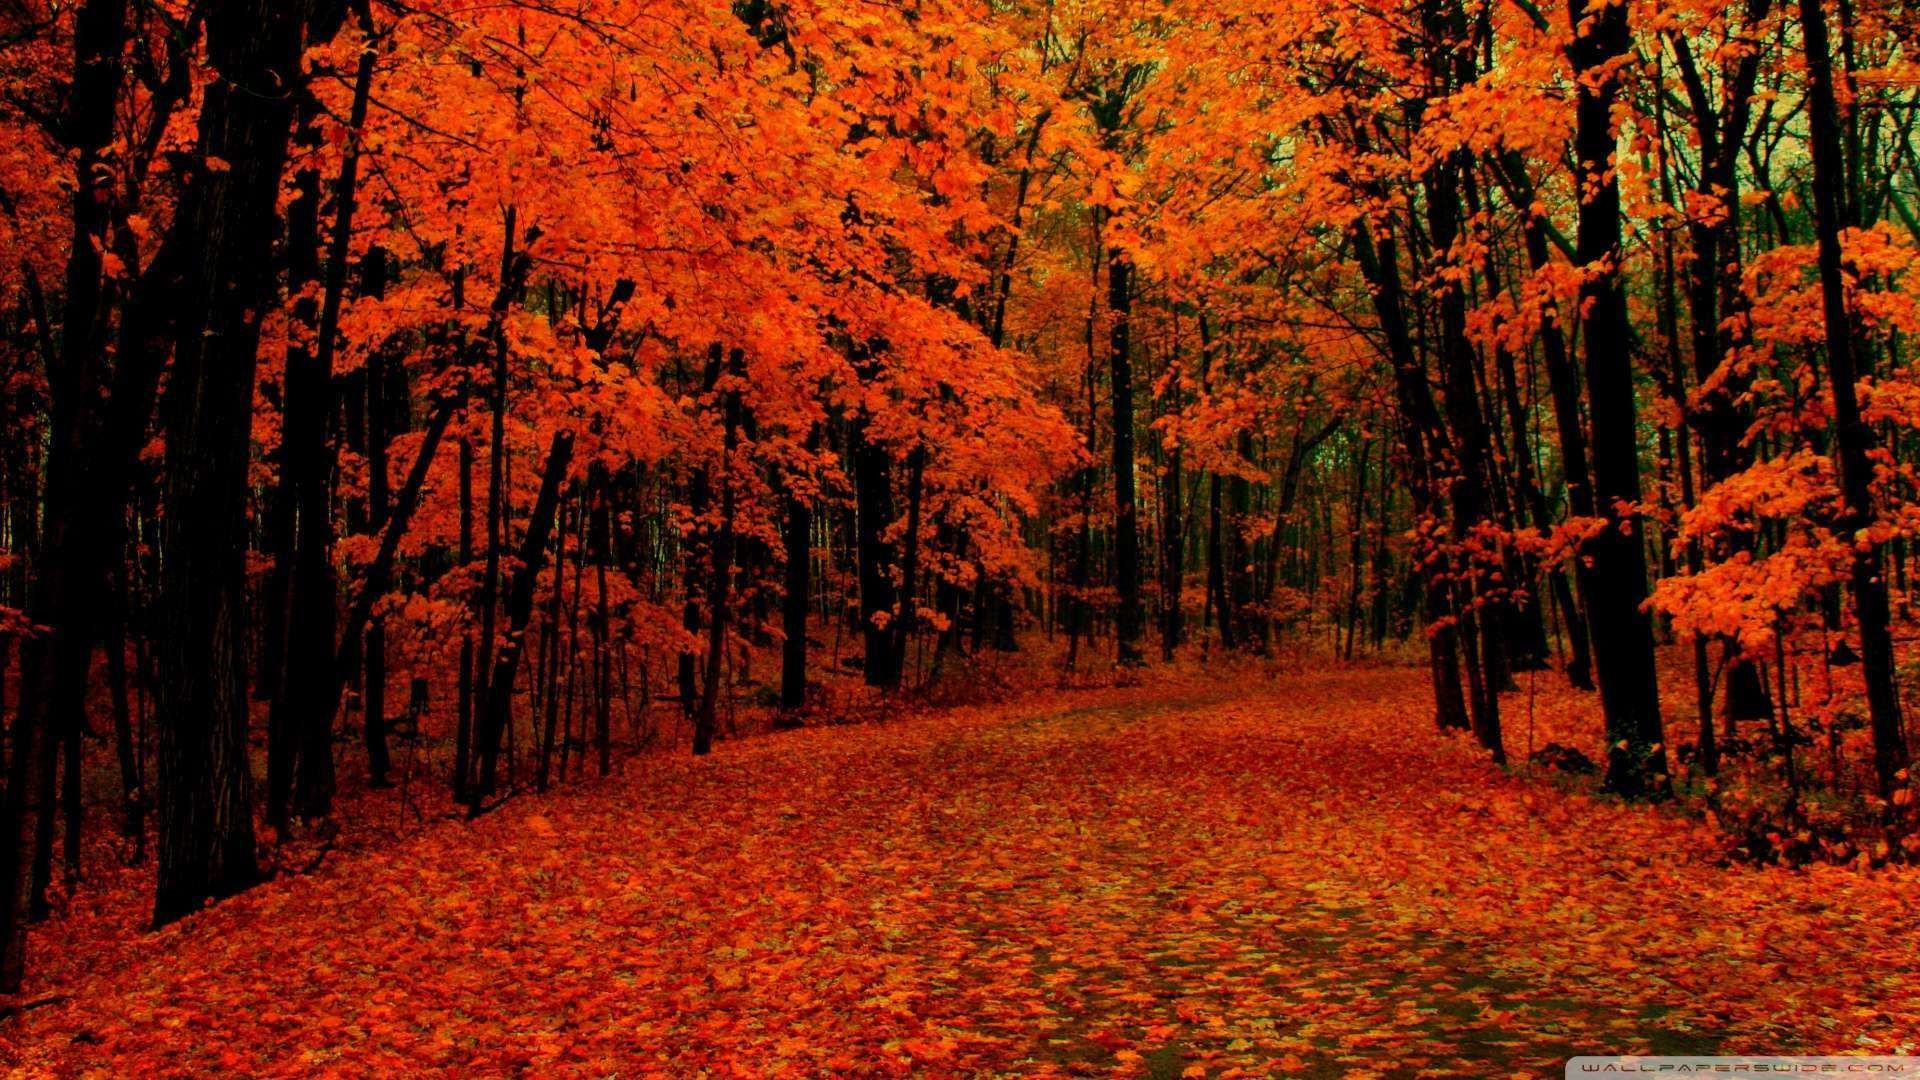 Mark Hd Fall Background Images Fall Wallpaper Autumn Leaves Wallpaper